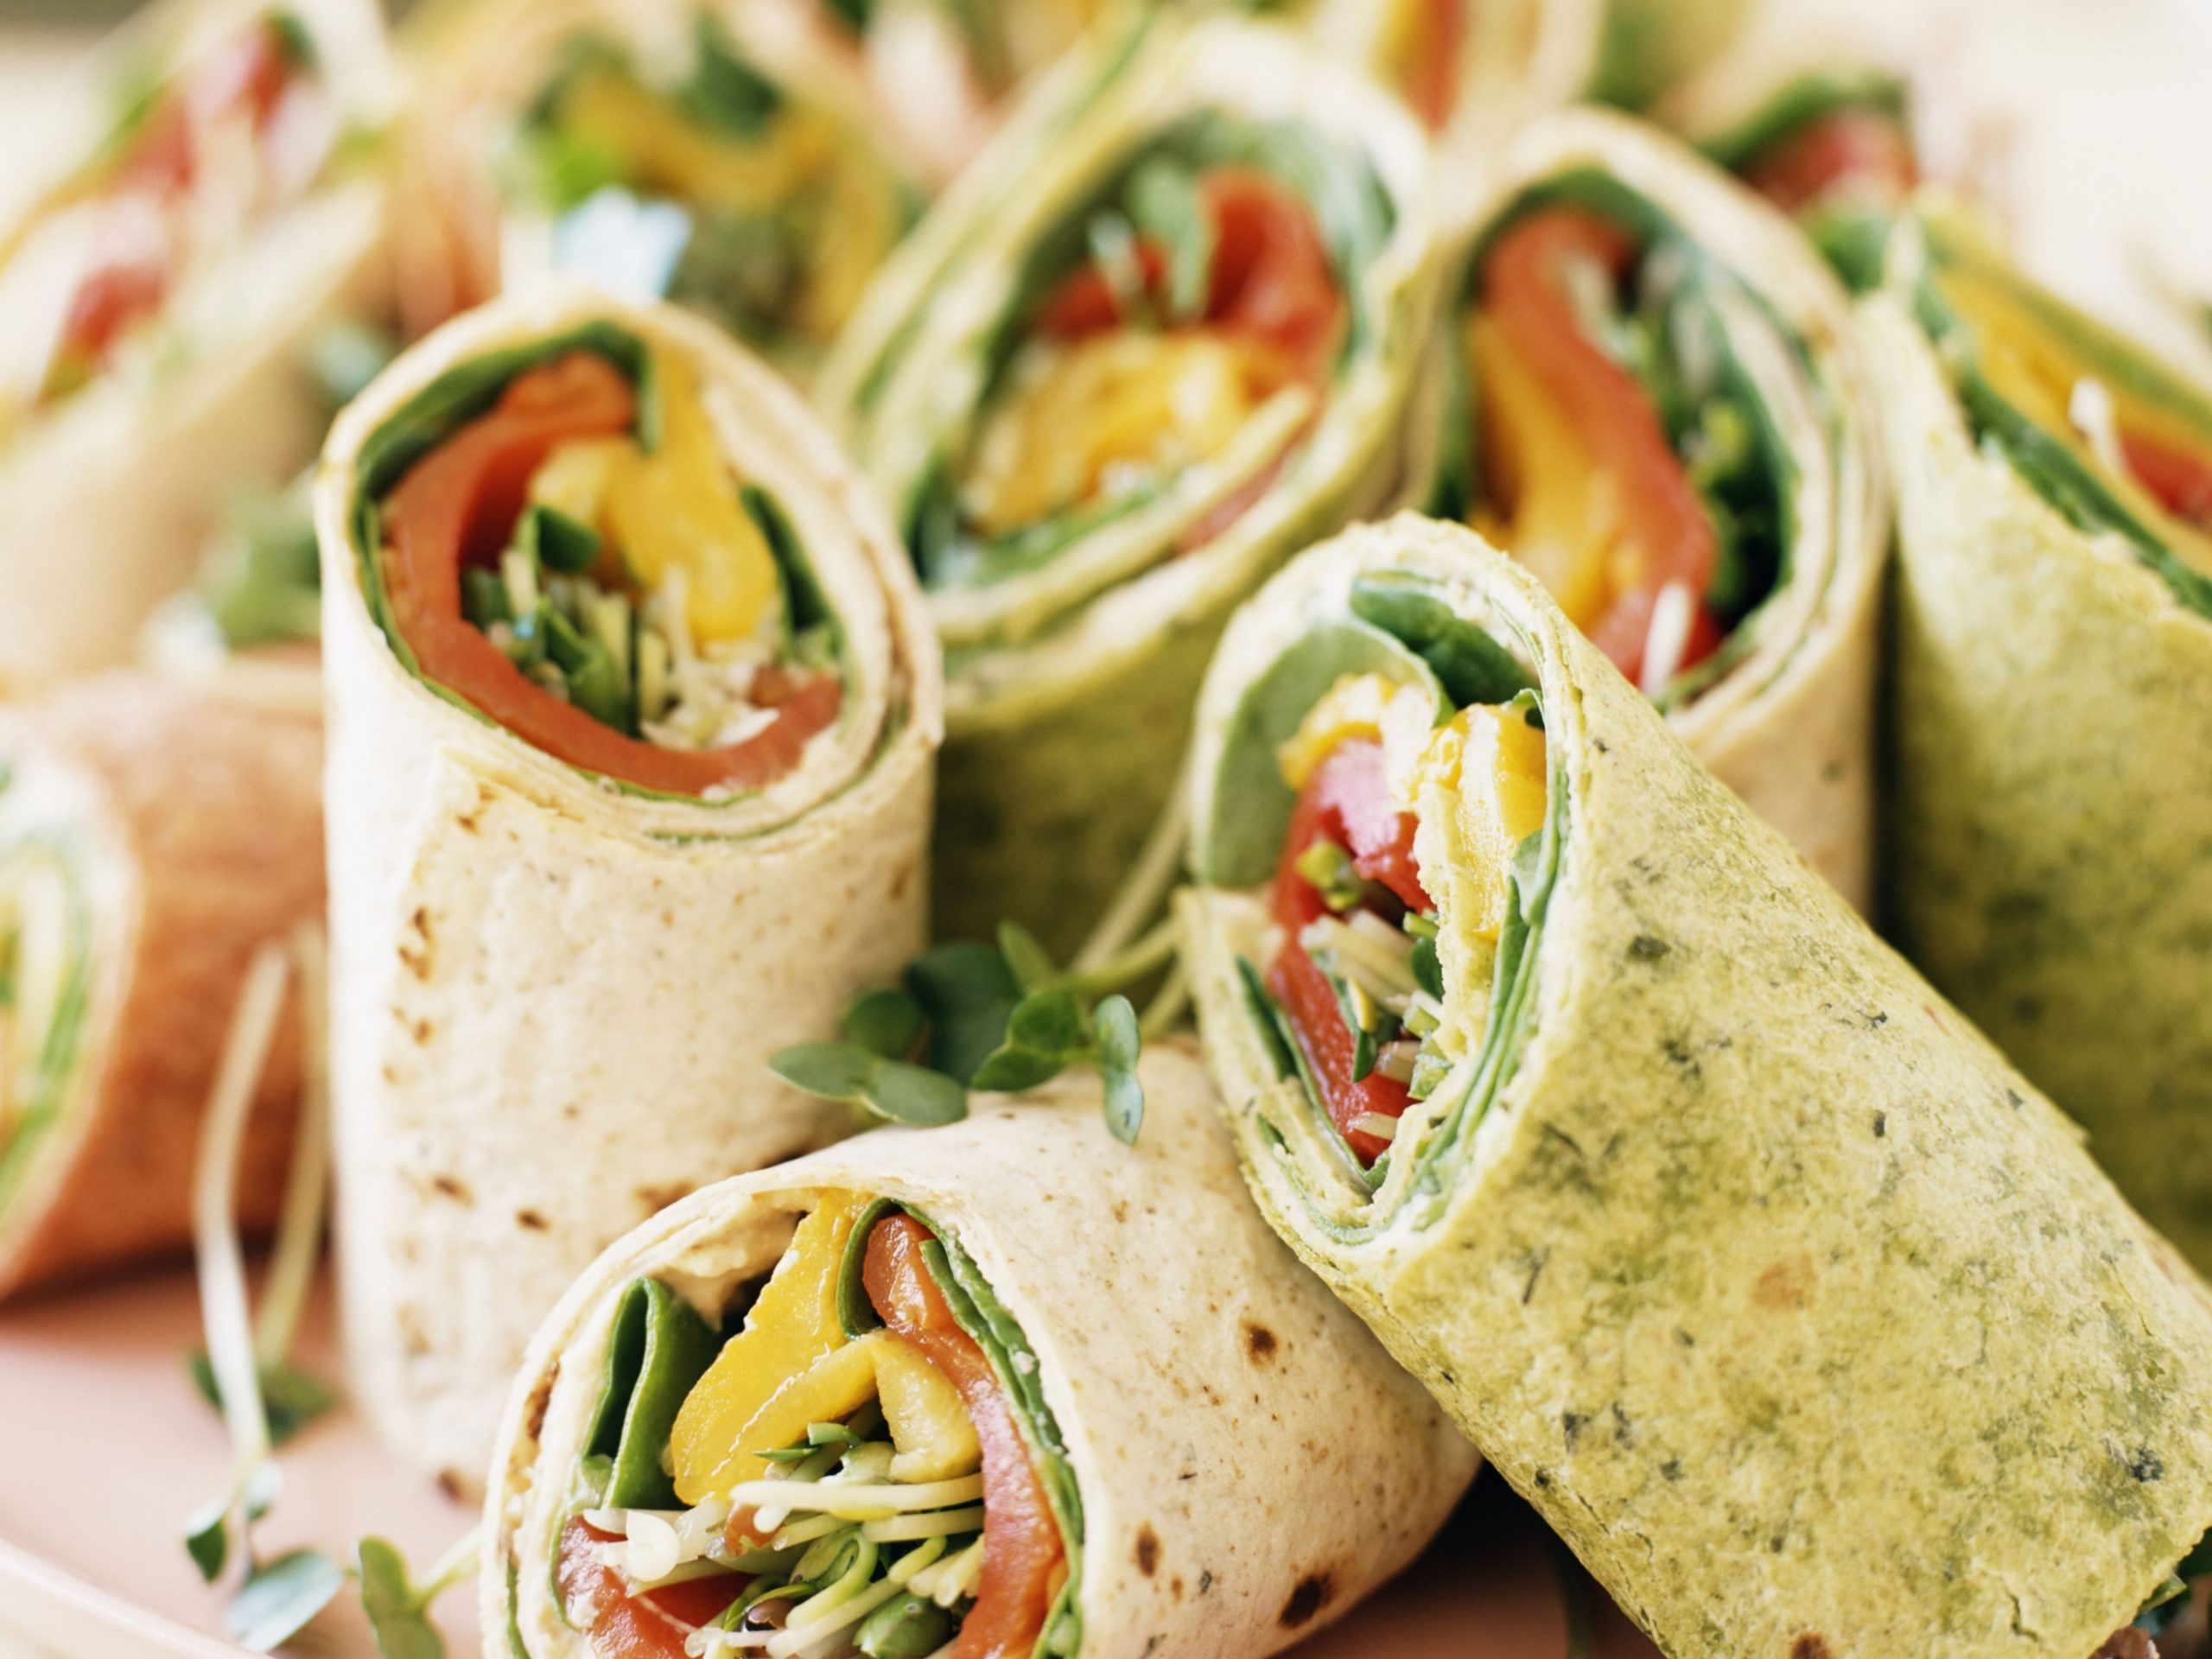 Vegan Cream Cheese Veggie Wraps - Recipes Sandwich Wraps